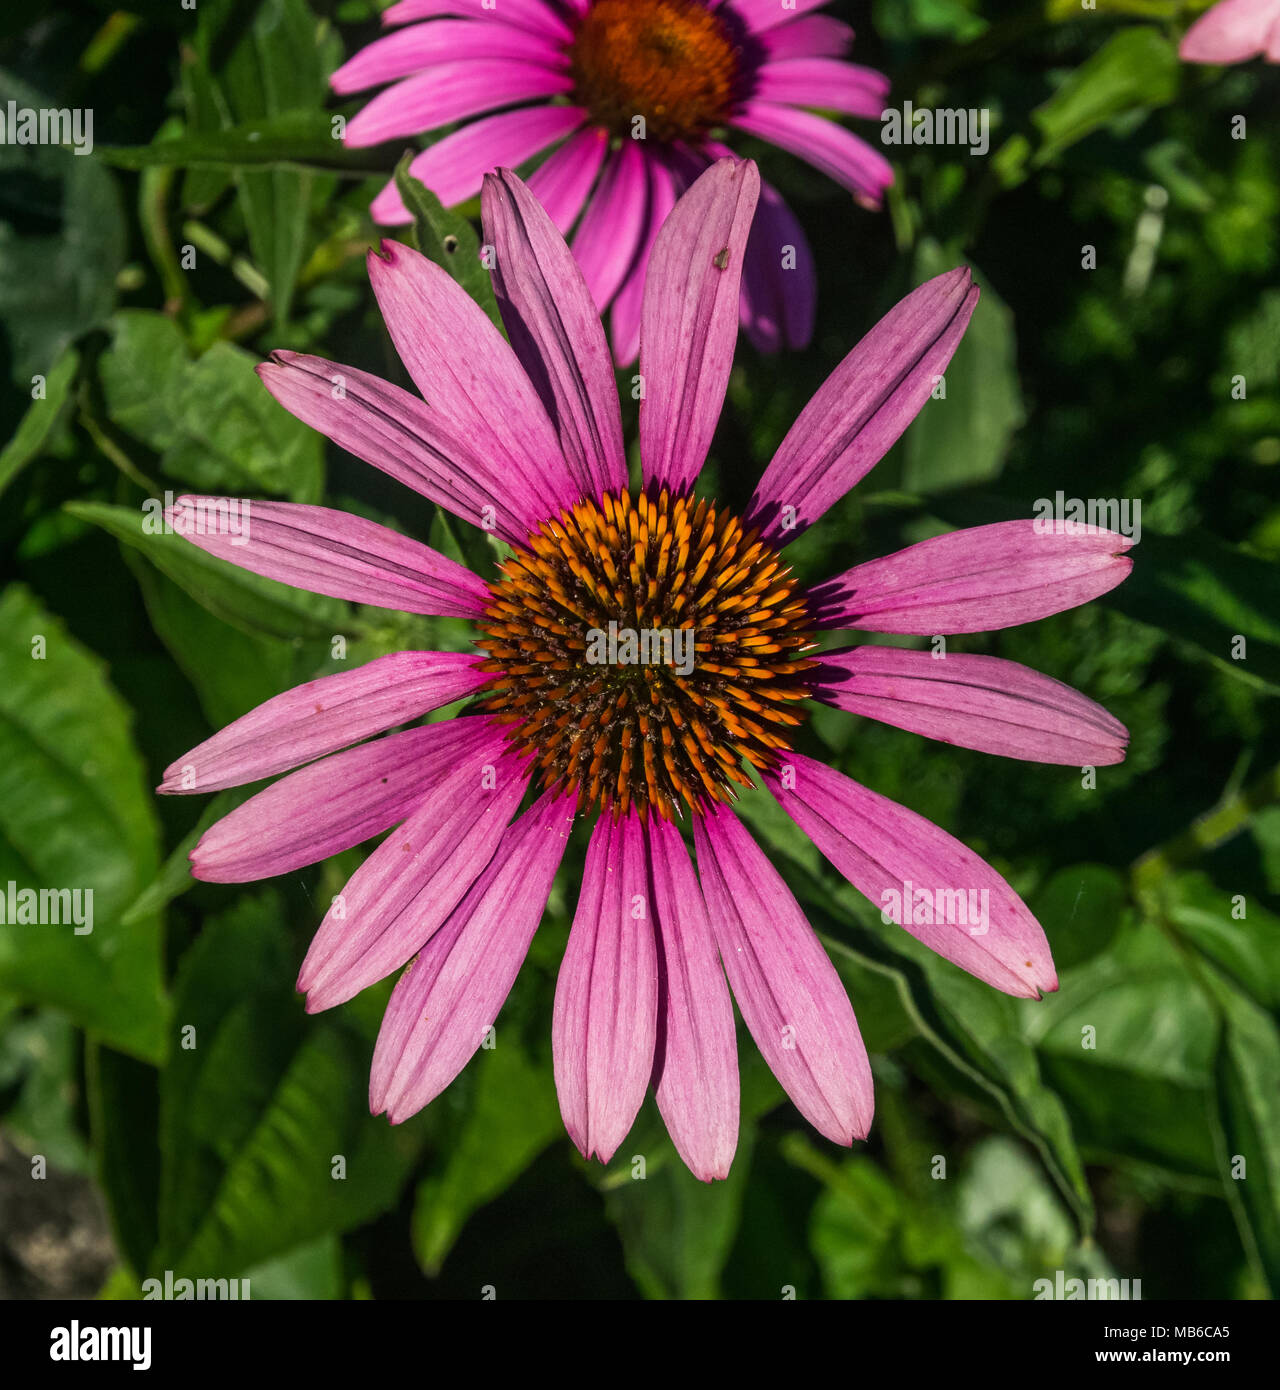 Purple Coneflower cultivated in commune of Bozouls, Aveyron, France - Stock Image